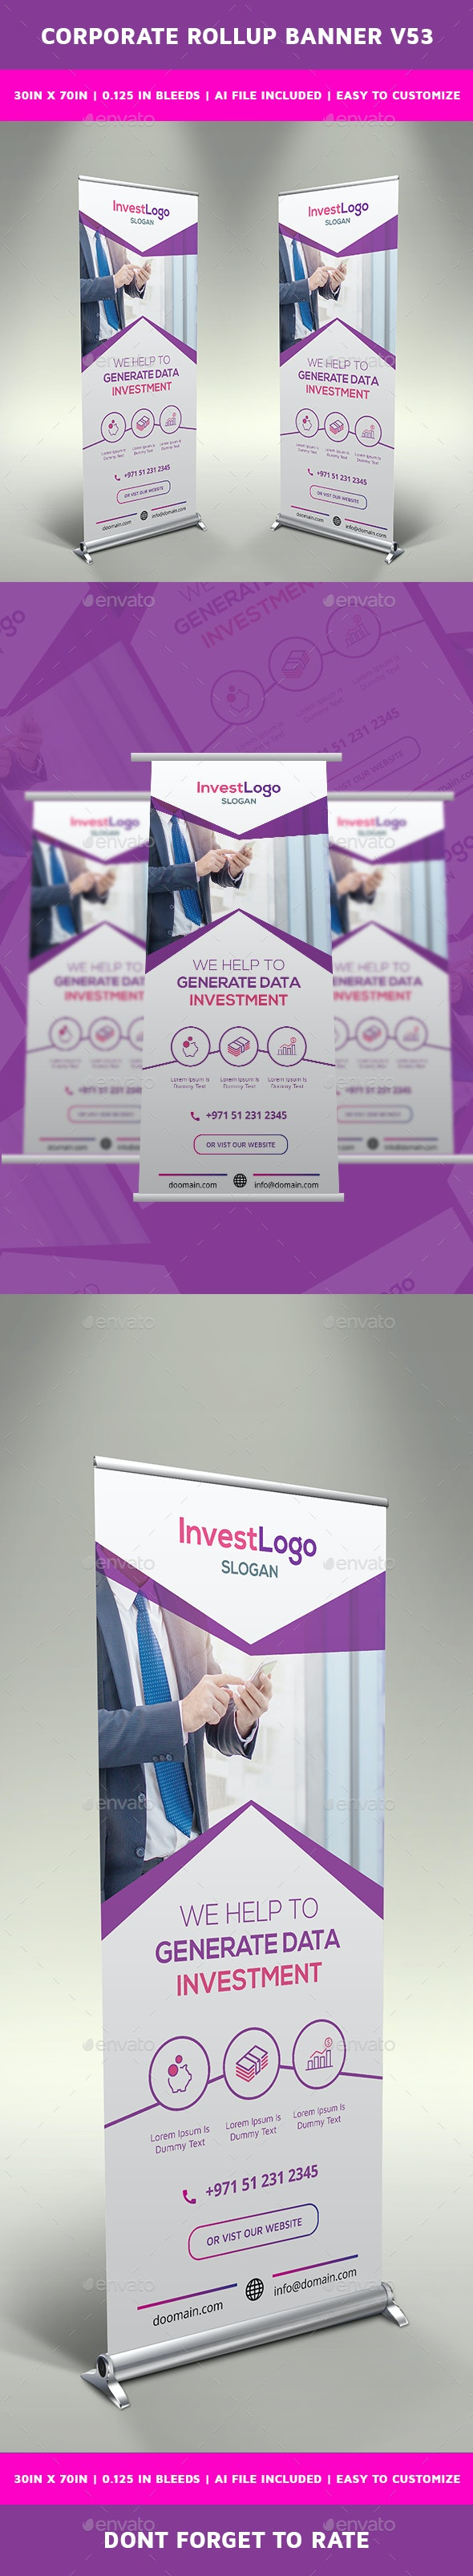 Corporate Rollup Banner v53 - Signage Print Templates